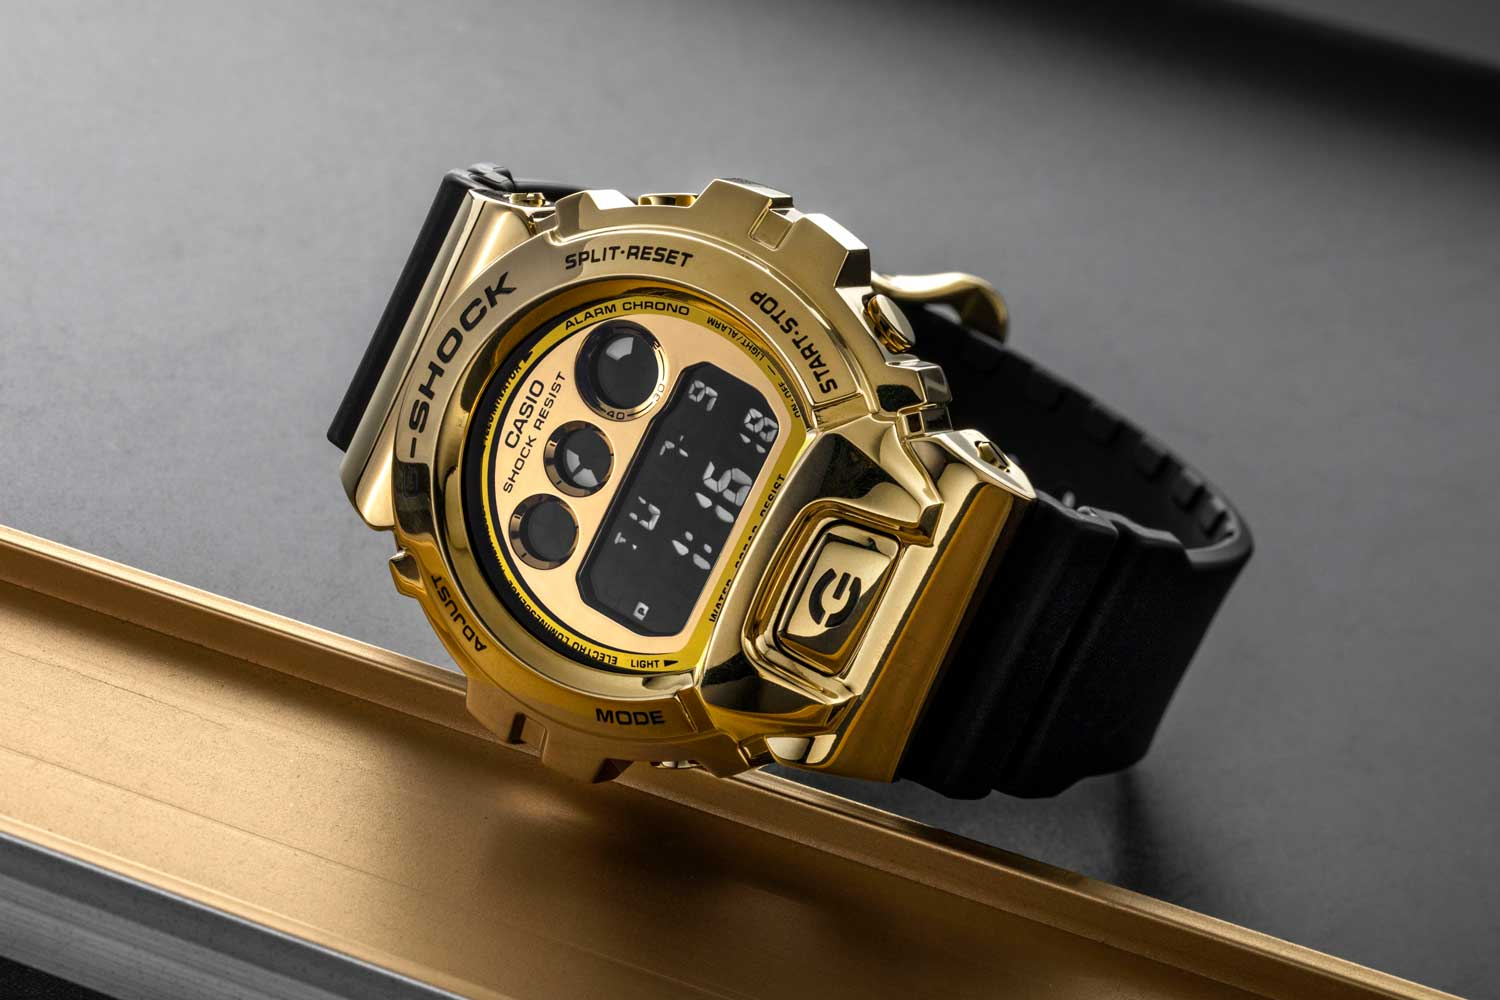 Casio G-SHOCK GM-6900 (Image © Revolution)